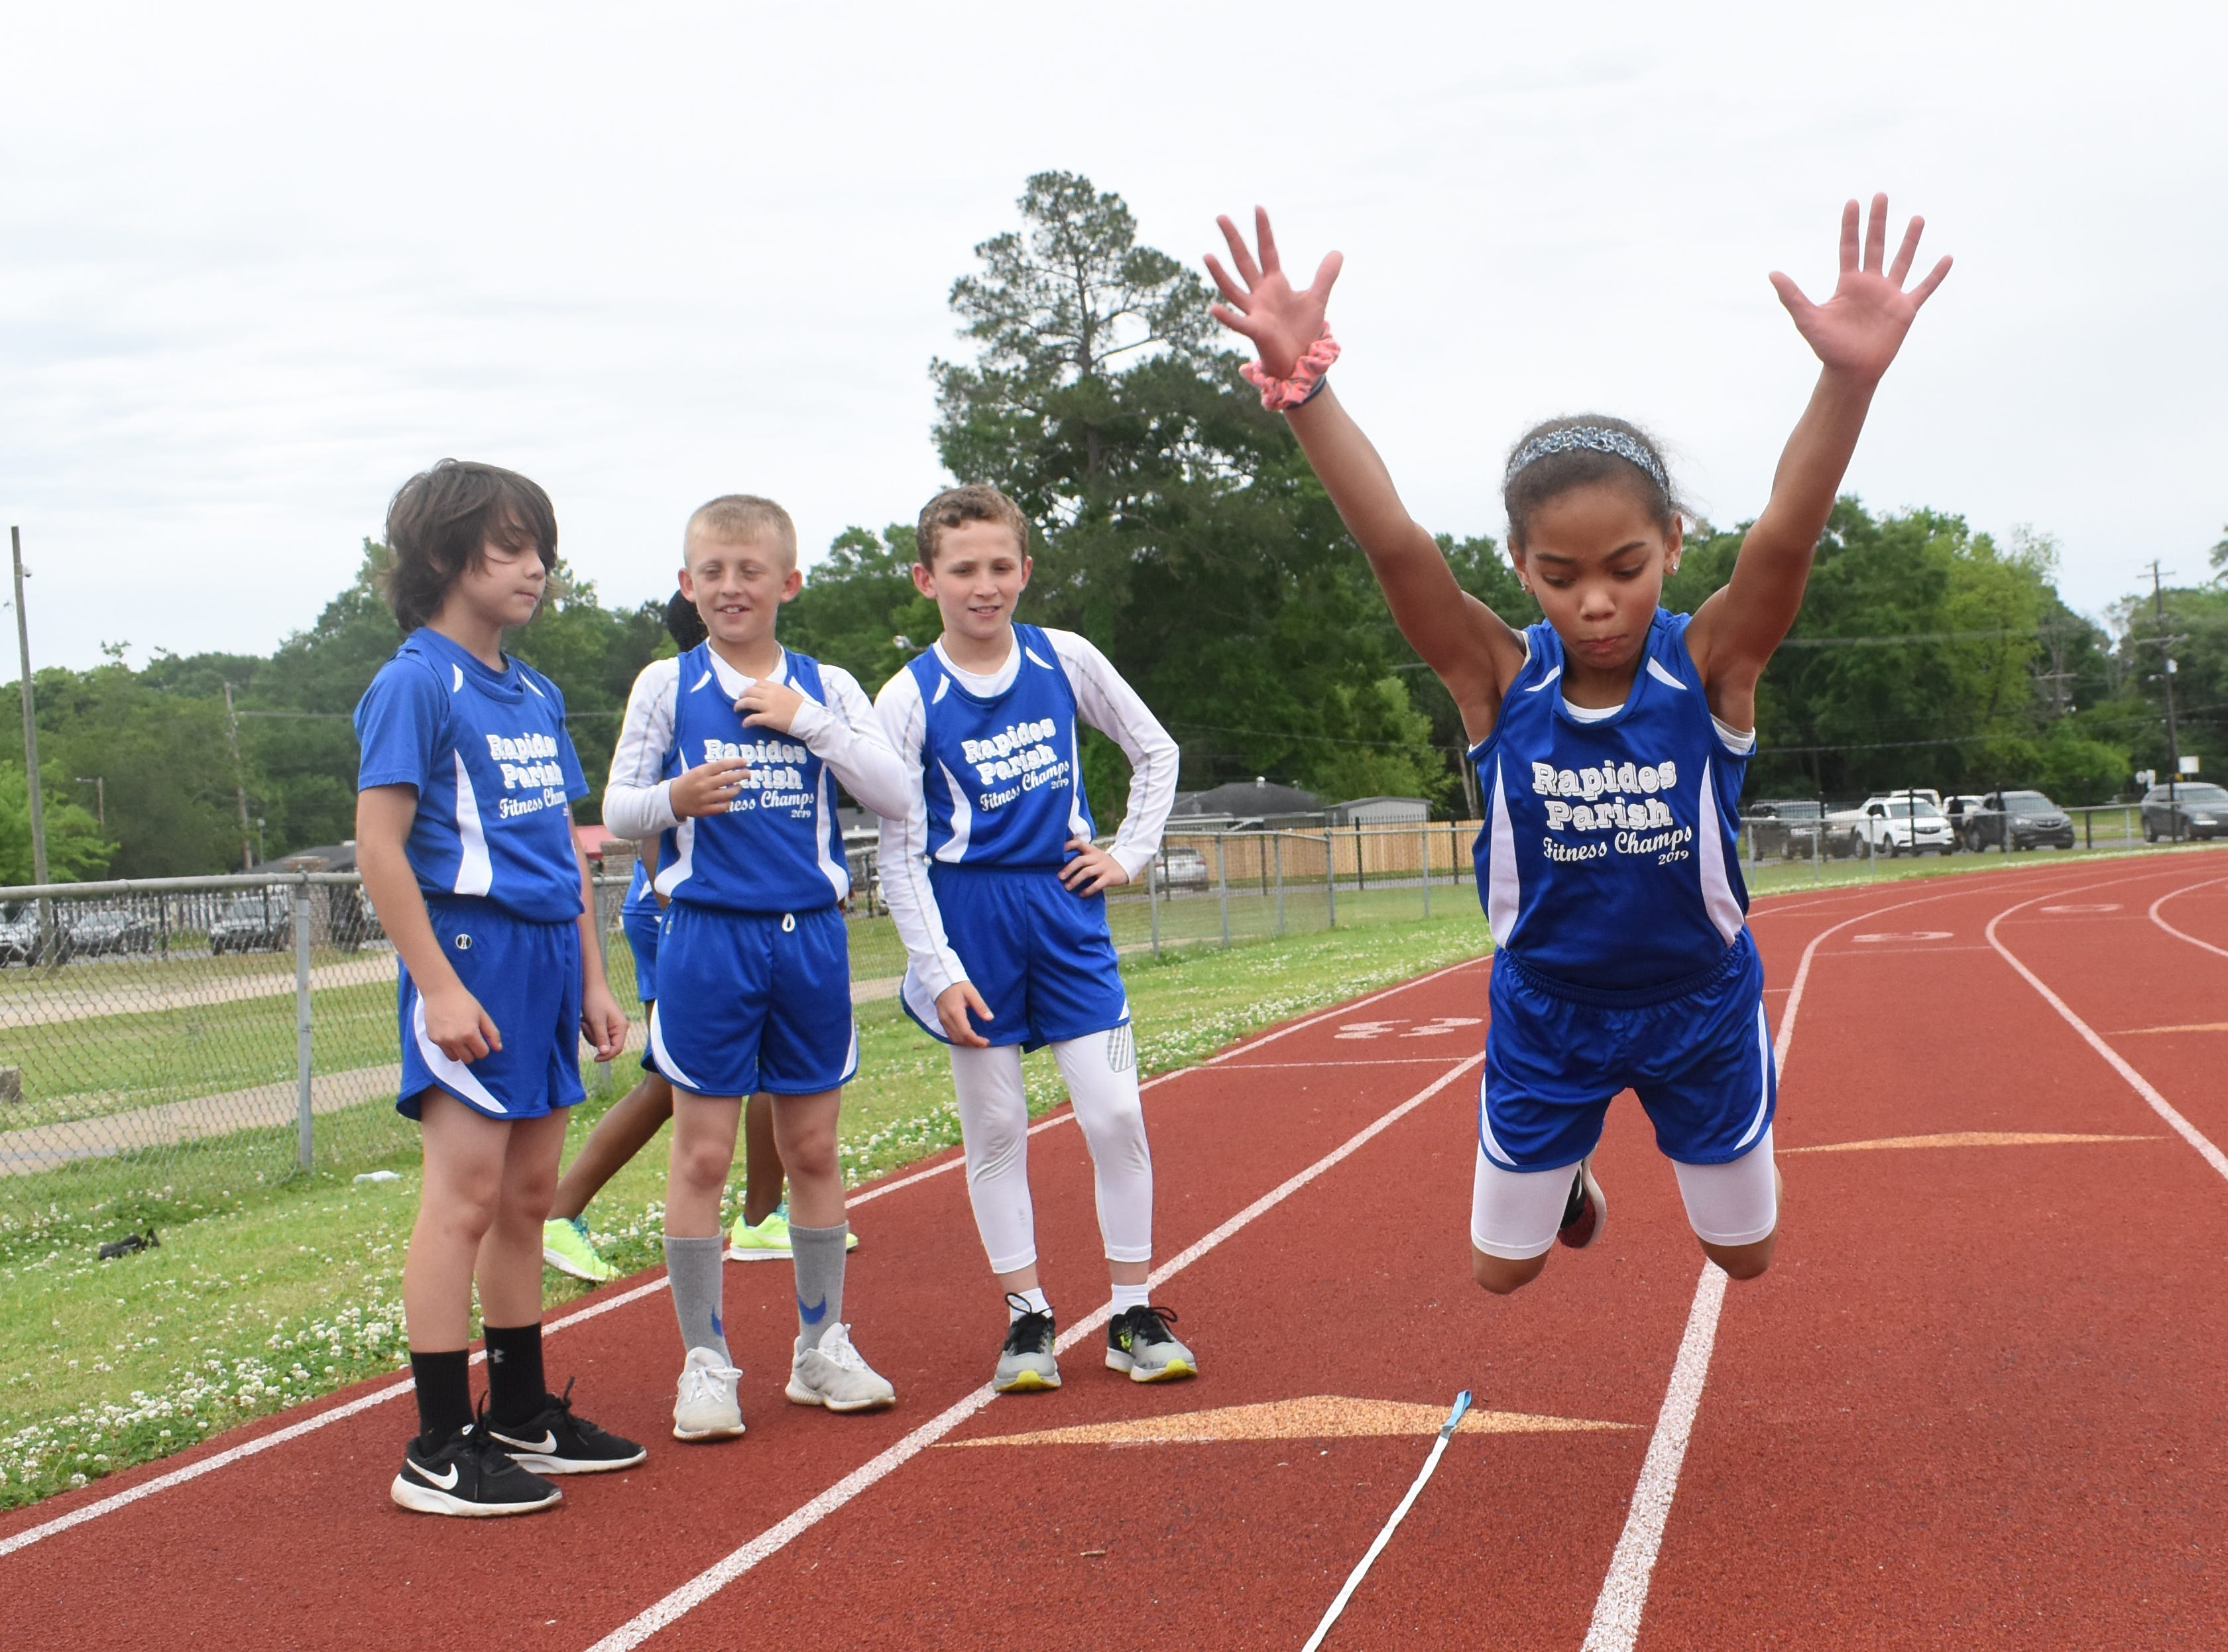 Madeline Davis (left) of Nachman Elementary School complete a long jump. Madeline is part the 2019 Rapides Parish Fitness Team. Madeline and five other Rapides Parish elementary school students will compete in the 2019 State Championship Fitness Meet to be held Saturday, April 27, 2019 at Alexandria Senior High School. The meet is part of the Governor's Council on Fitness and Sports. Students from throughout Louisiana will compete in seven events: 50-yard dash, sit and reach, pull-ups,  shuttle run, curl-ups (sit-ups), standing long jump, and the 600-yard run. For the past three years, the Rapides Parish Fitness Team has placed first at the meet. Dean was the highest scoring boy last year and won the title of 2018 Mr. Fitness for the State of Louisiana. The meet will be from 10 a.m. to 2 p.m.